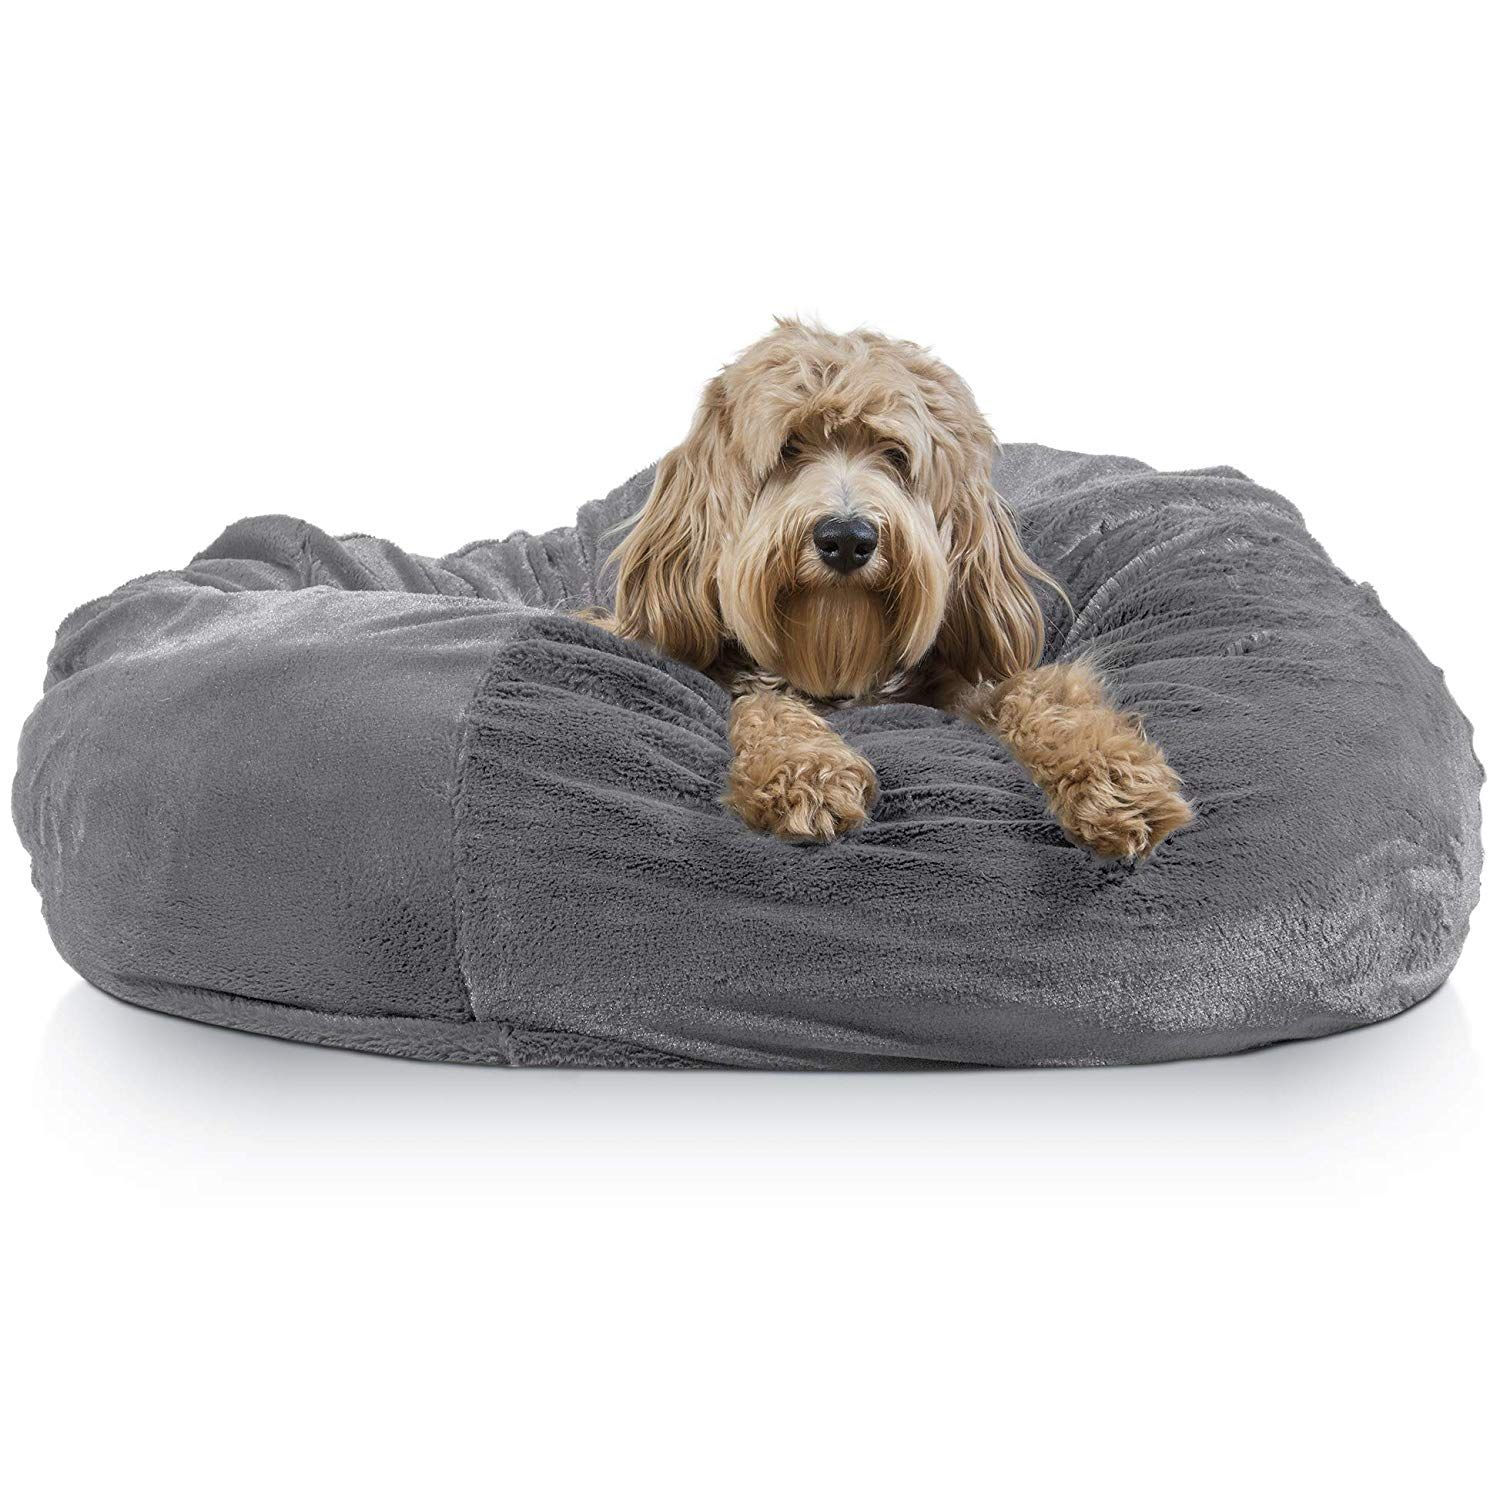 Furhaven Pet Dog Bed Round Plush Faux Fur Refillable Ball Nest Cushion Pet Bed W Removable Cover Dog Pet Beds Animal Pillows Furhaven